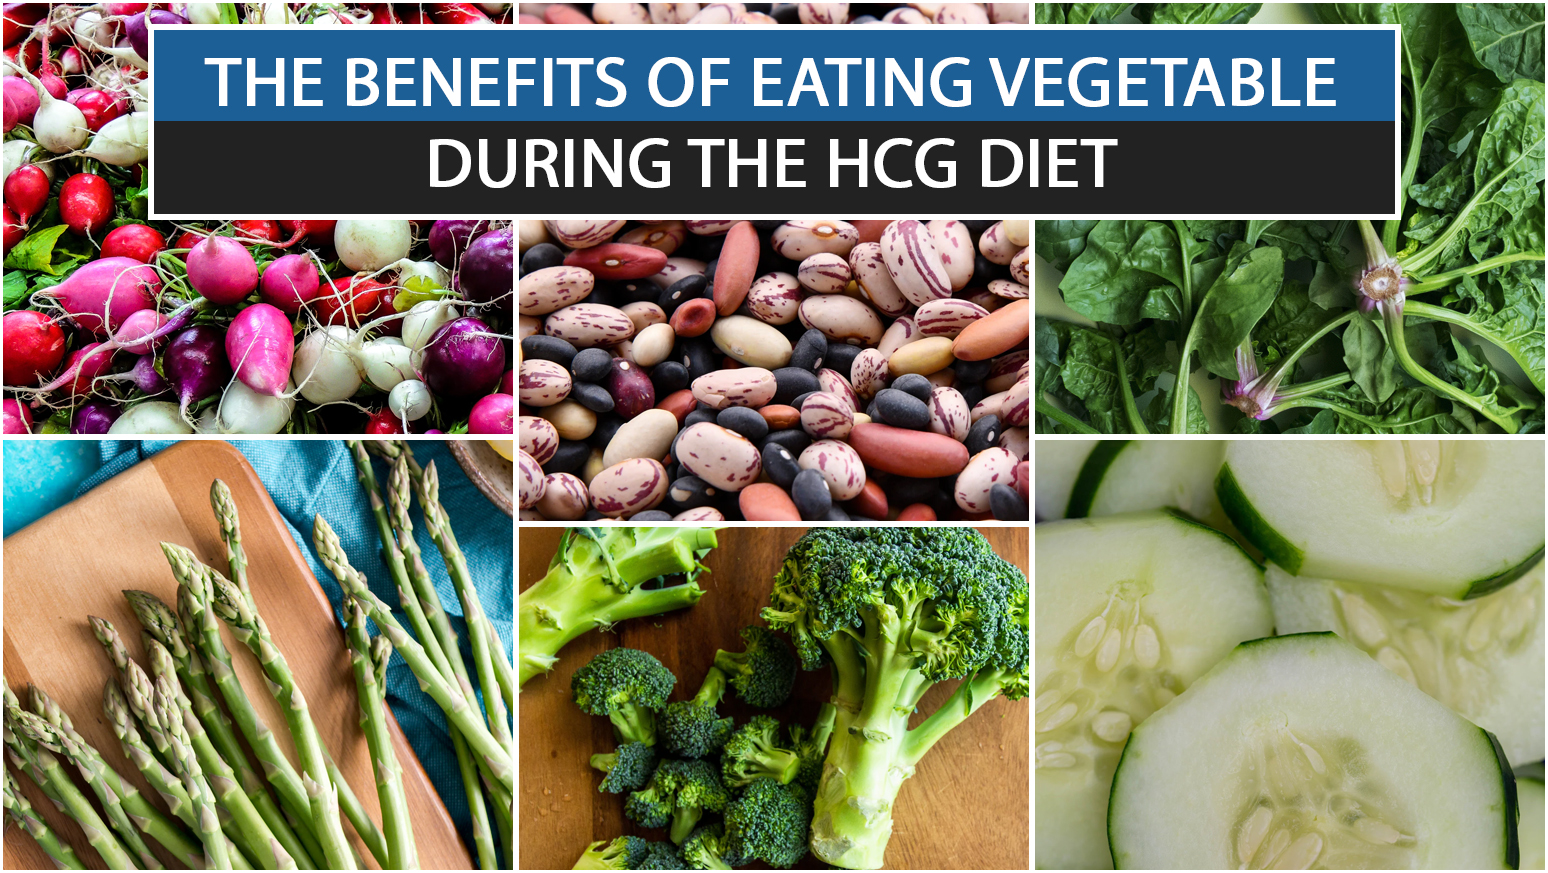 THE BENEFITS OF EATING VEGETABLE DURING THE HCG DIET